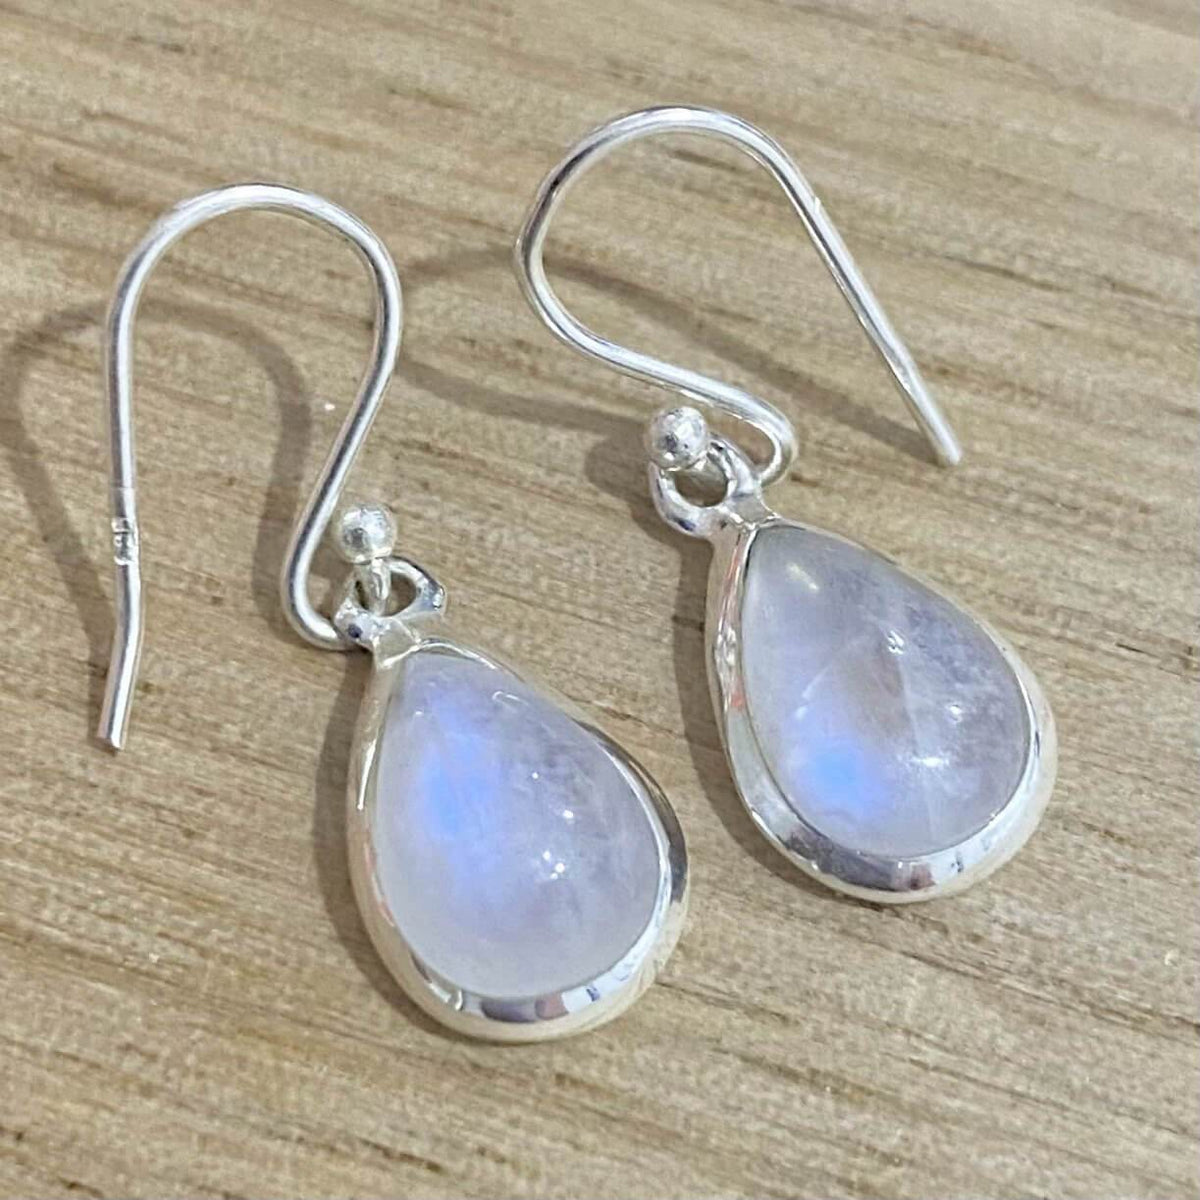 Laihas Classic Chic Small Raindrop Moonstone Earrings - Laihas Bohemian Dreaming